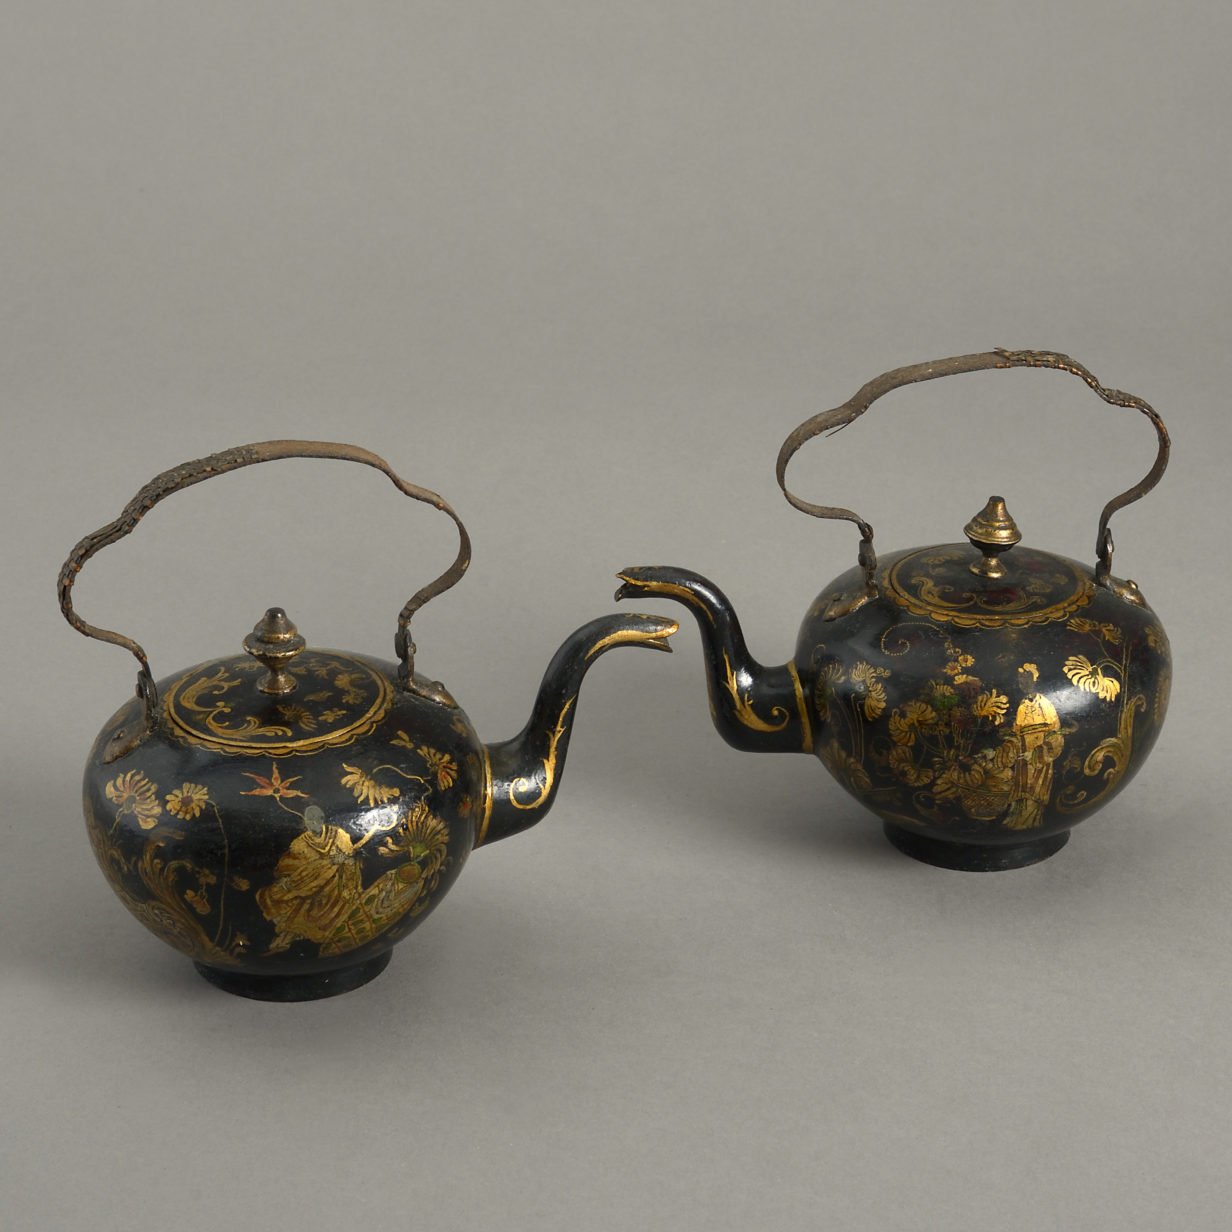 Pair of Chinese Tea Pots